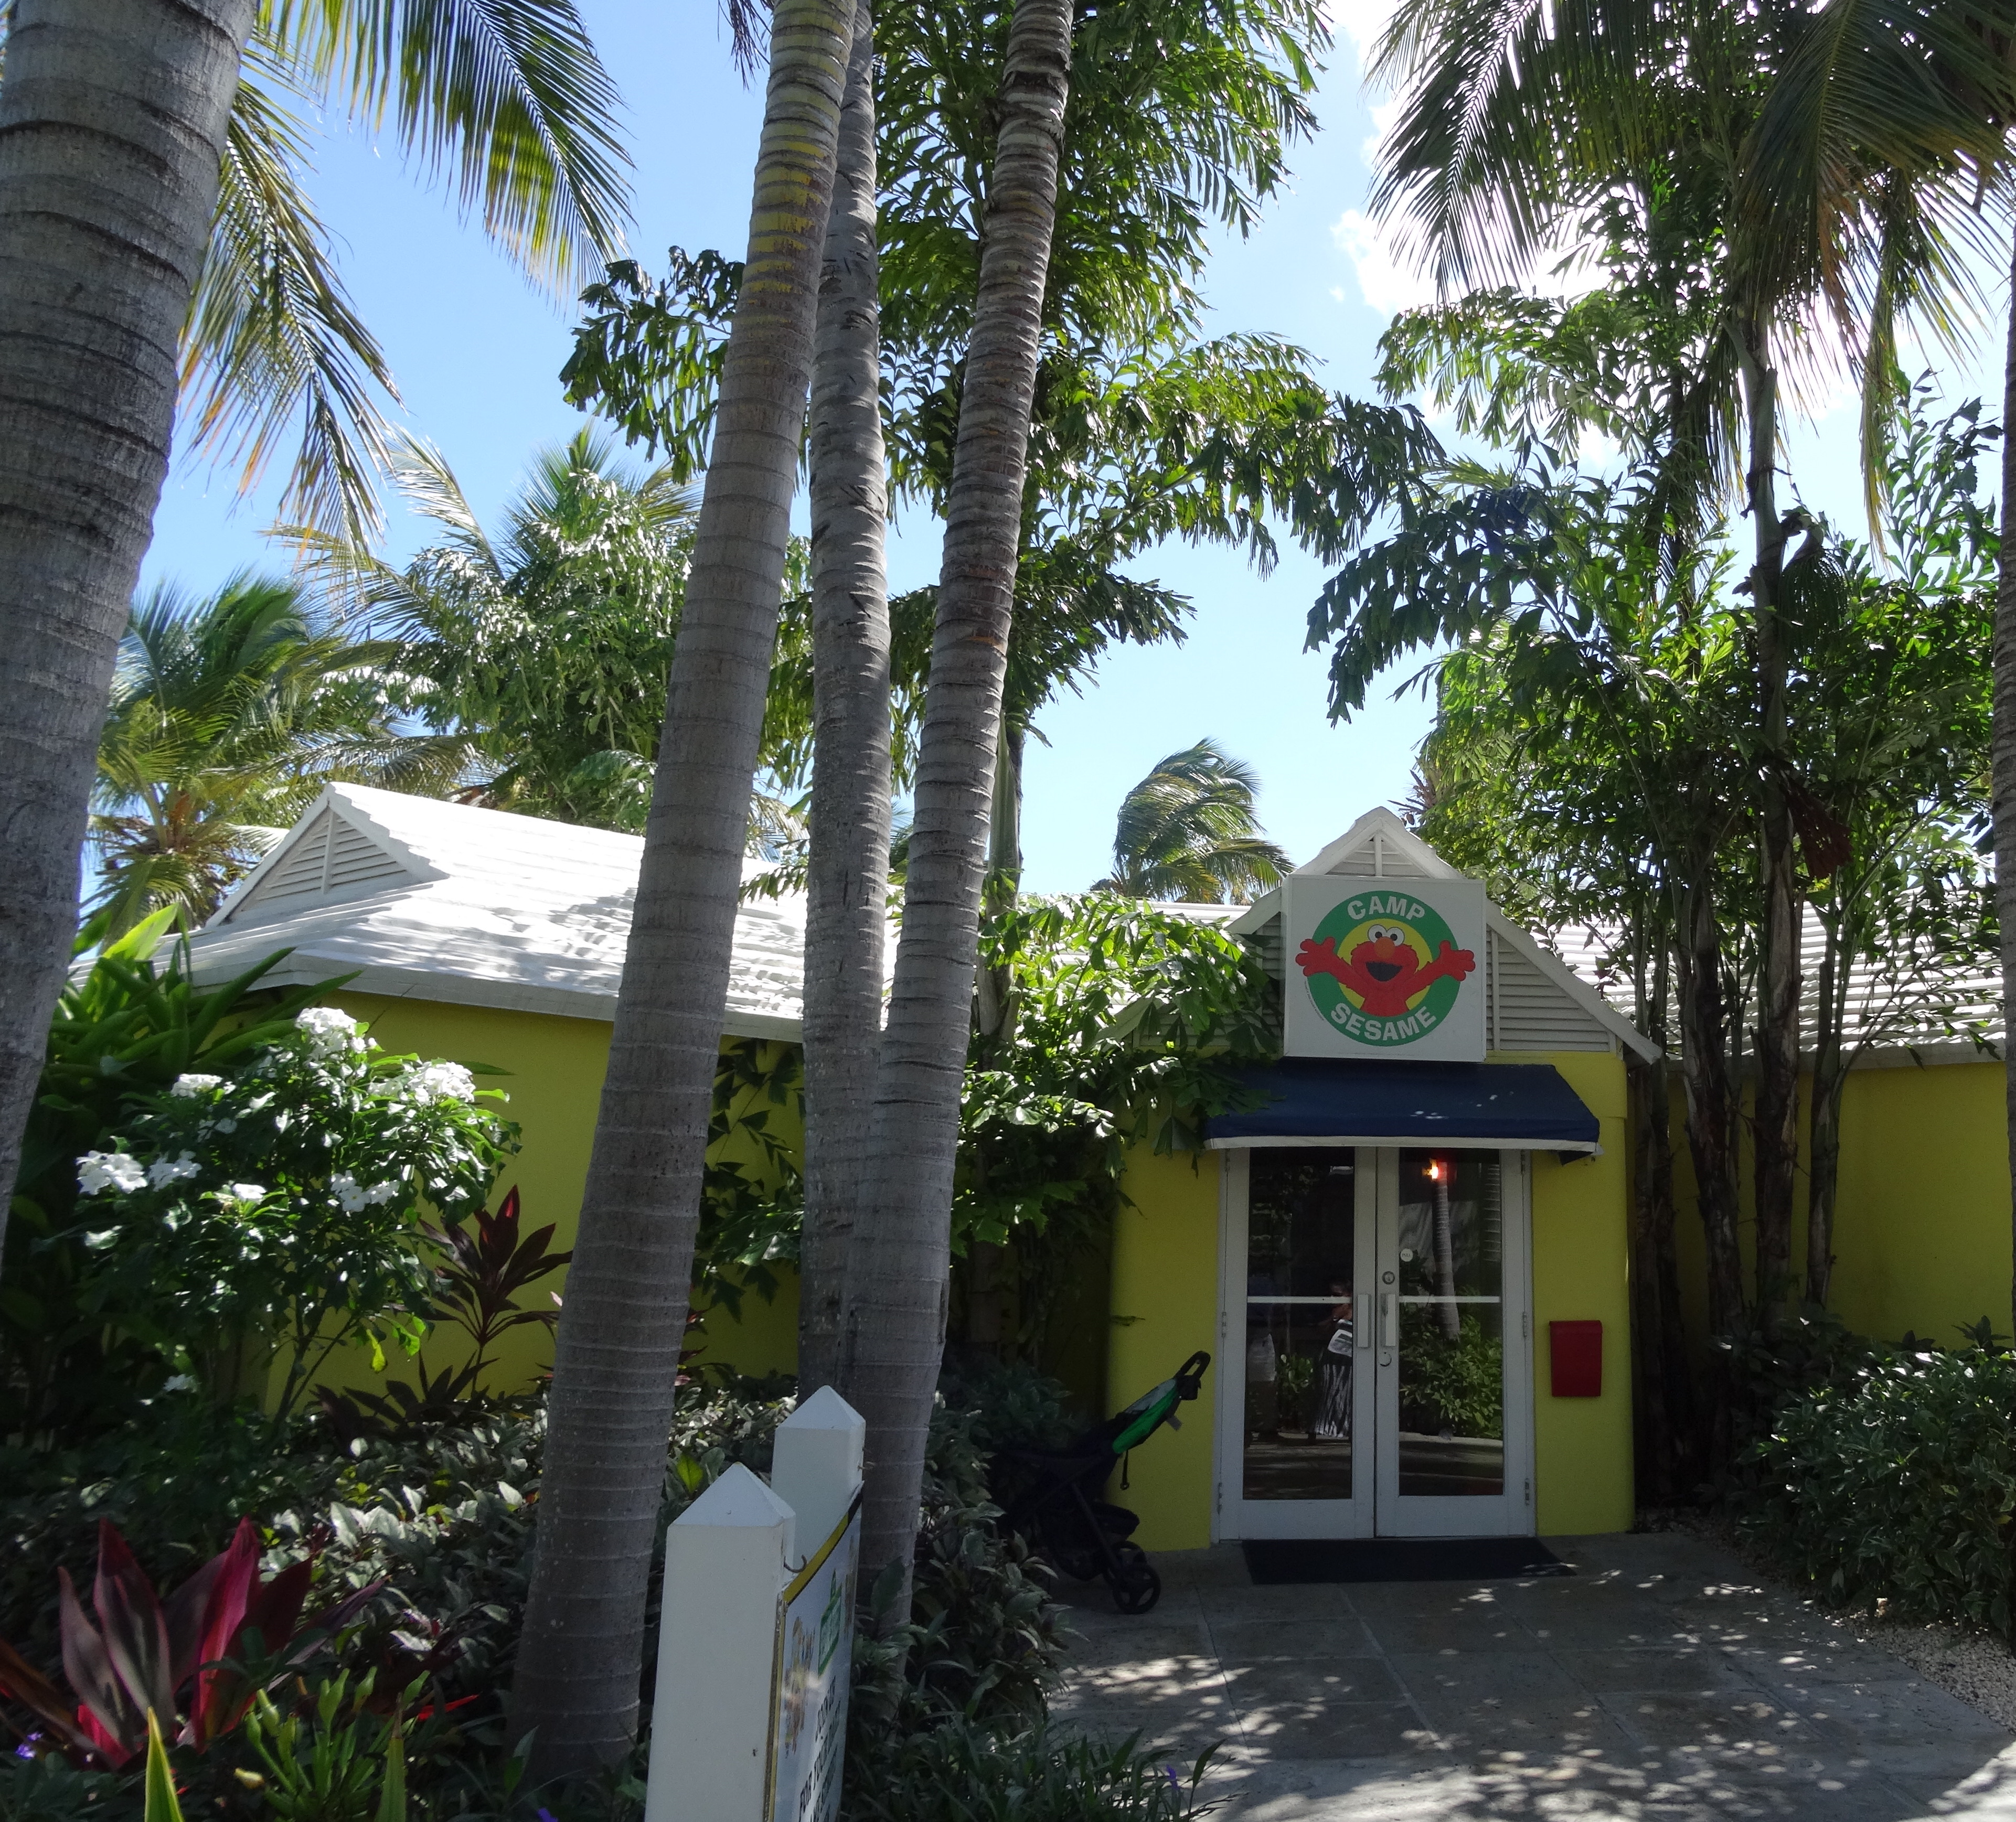 Camp Sesame at Beaches Turks and Caicos